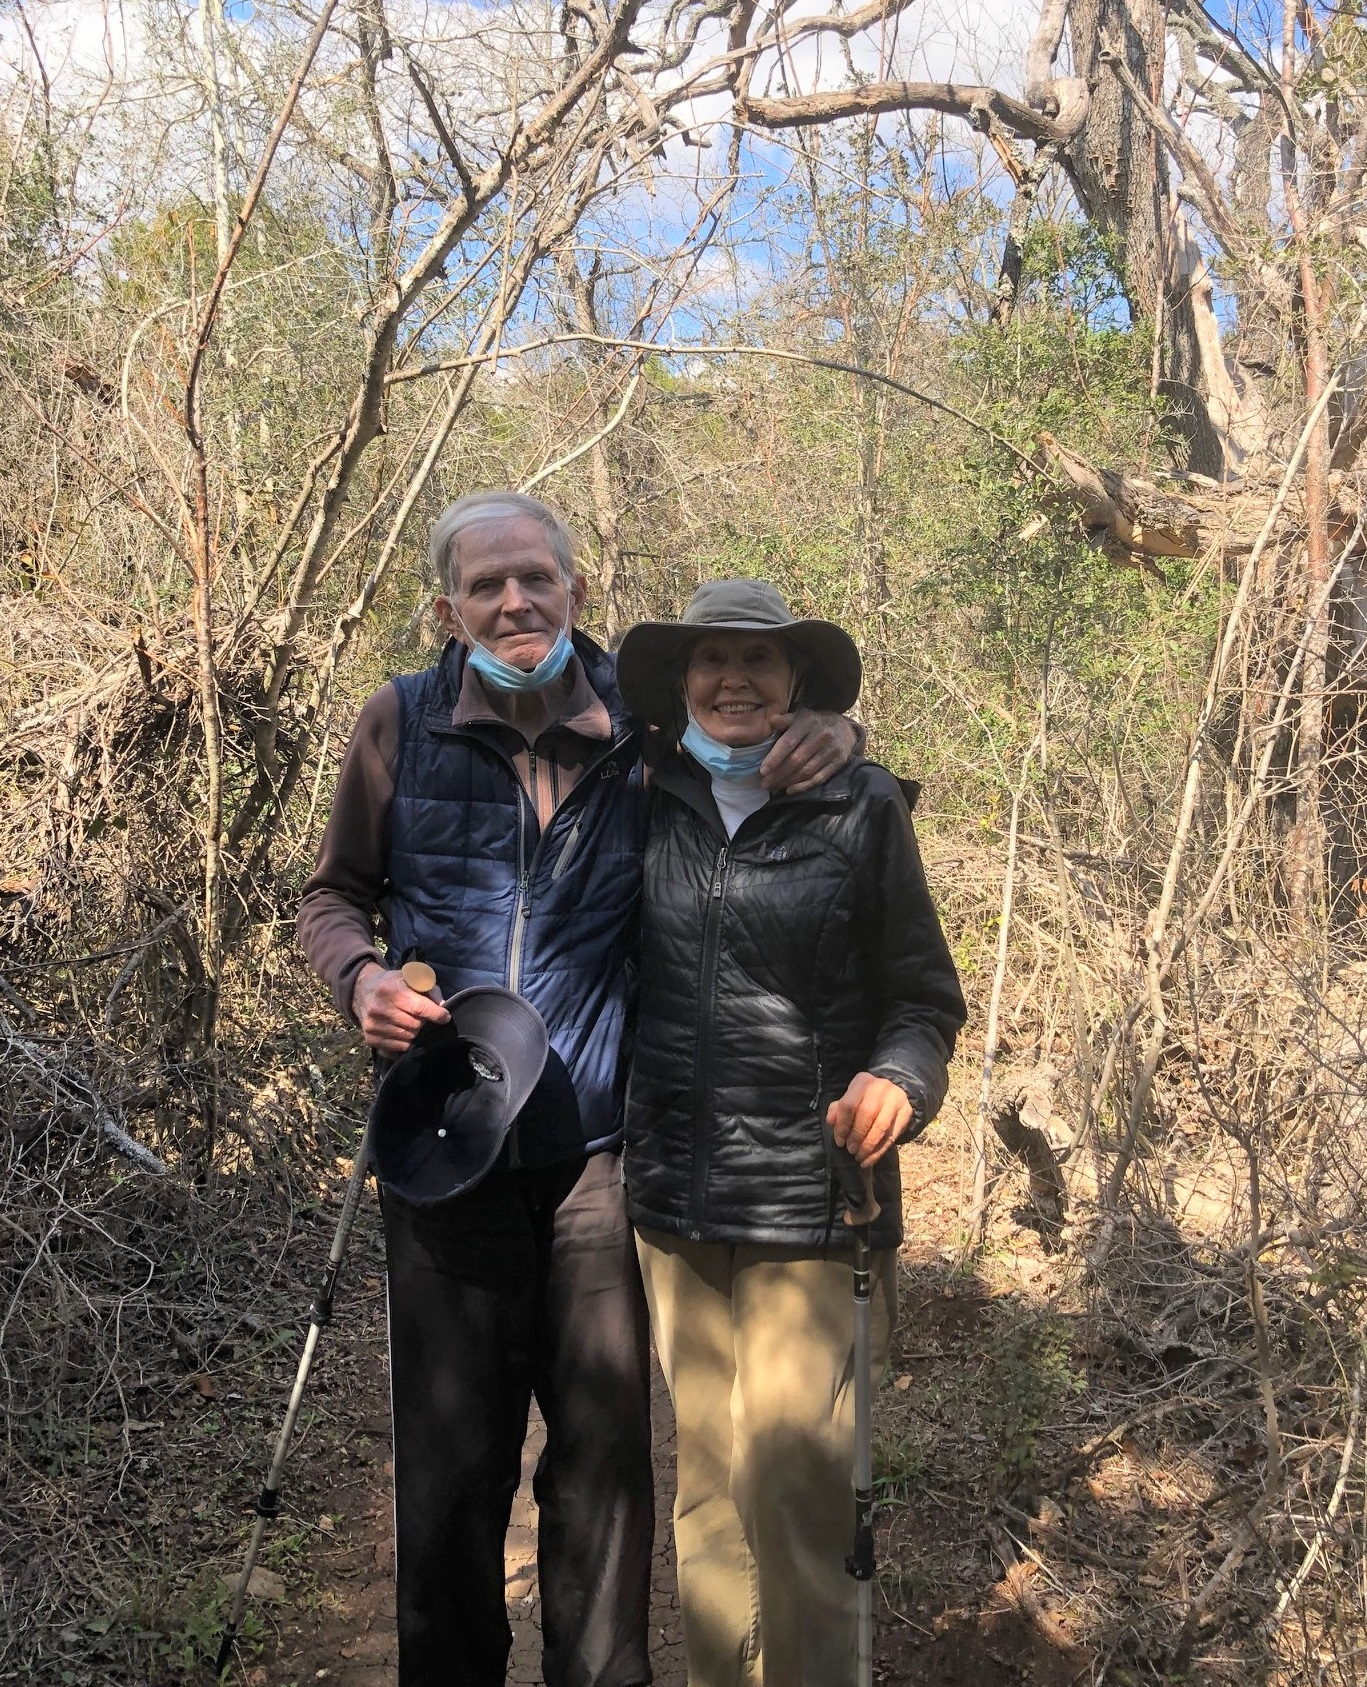 Photos from South Austin Violet Crown Trail on Mar 6th